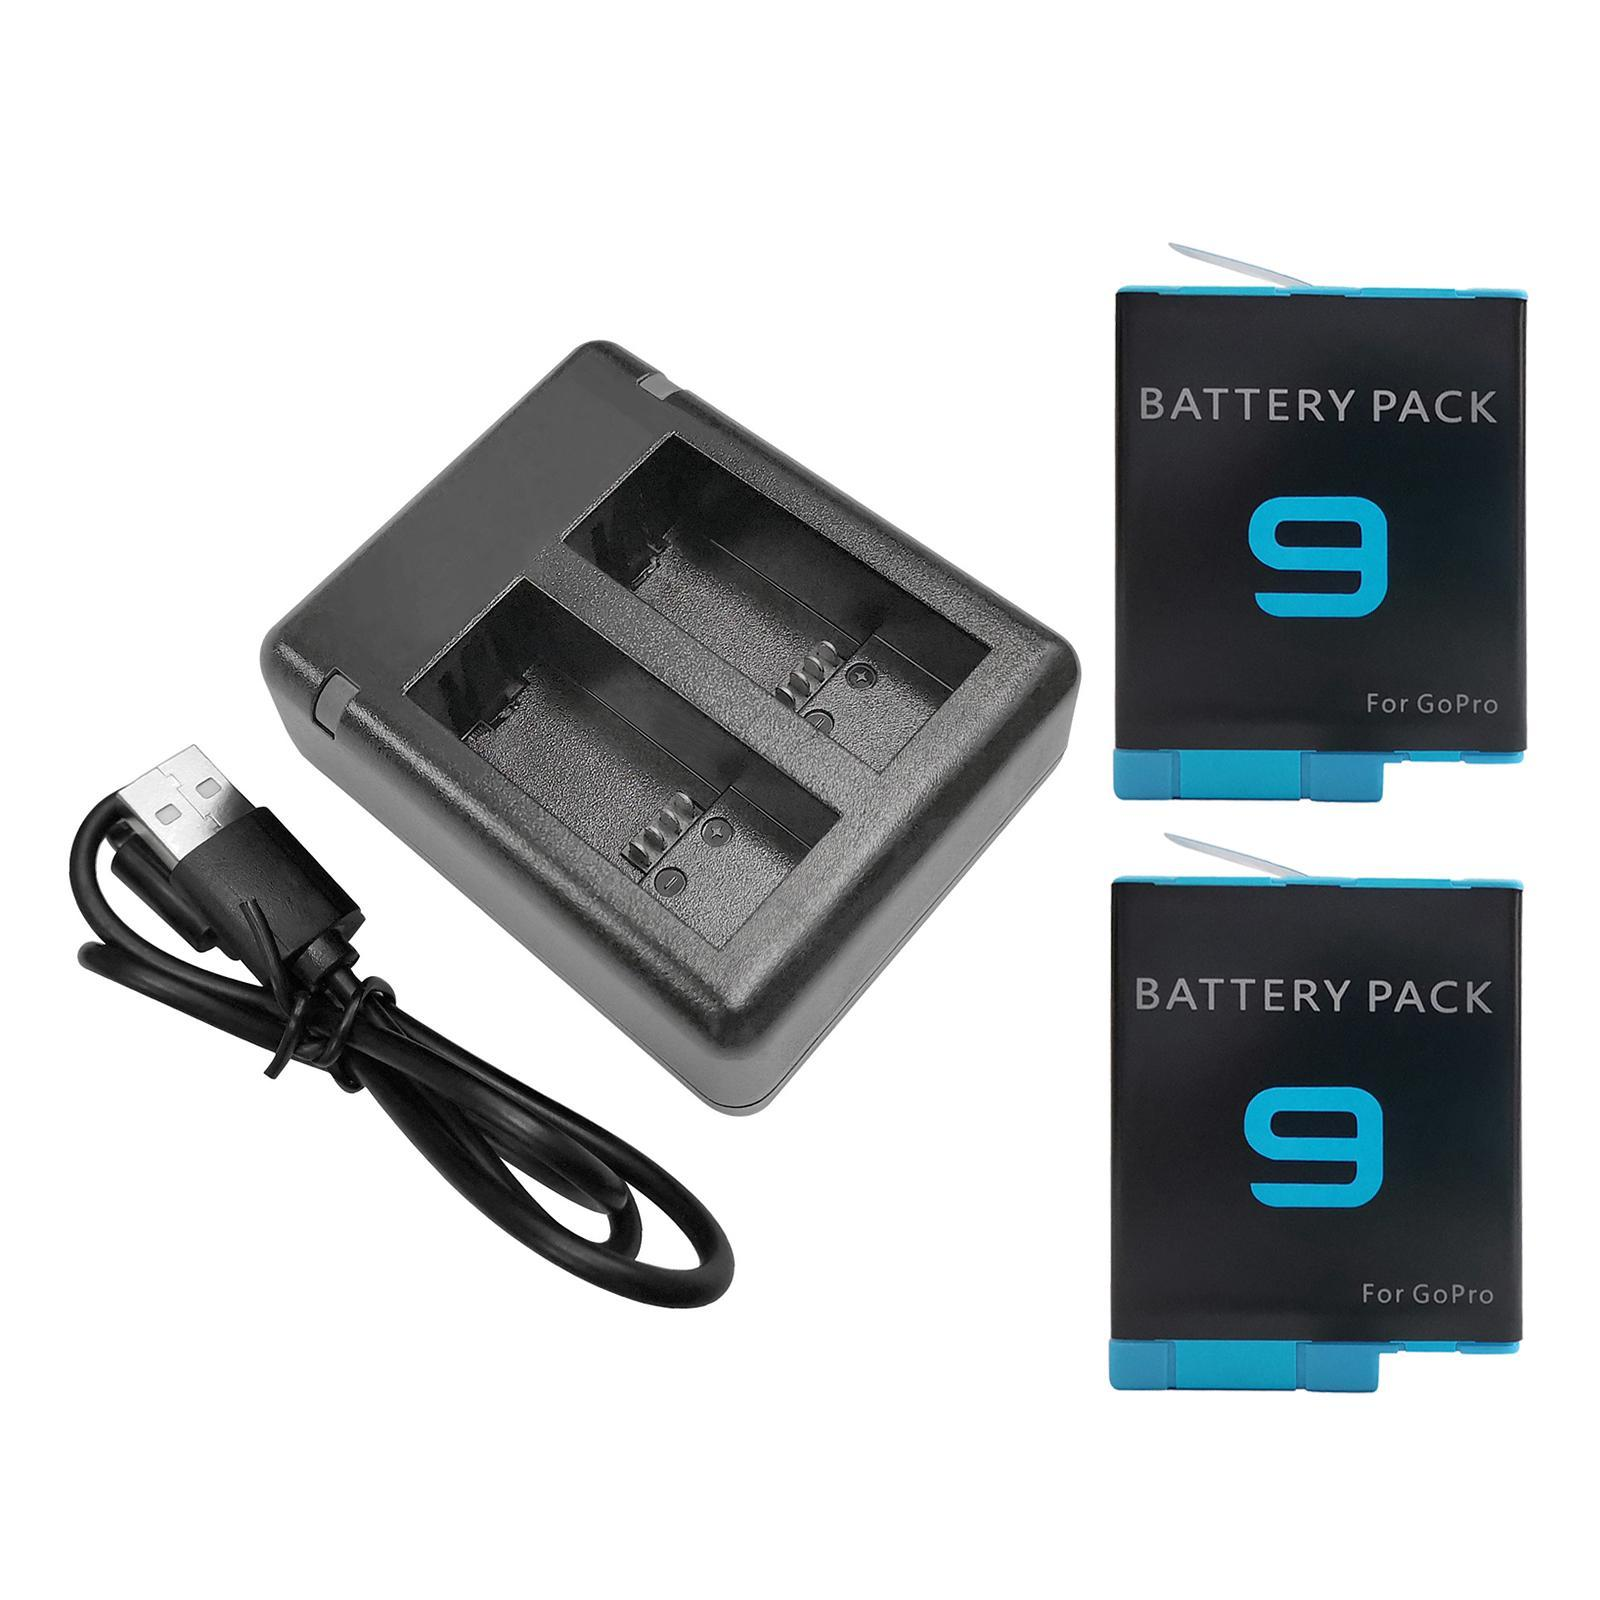 thumbnail 36 - Replace Batteries 1720mAh USB Quick Charger with Cord for   Hero 9 -Black